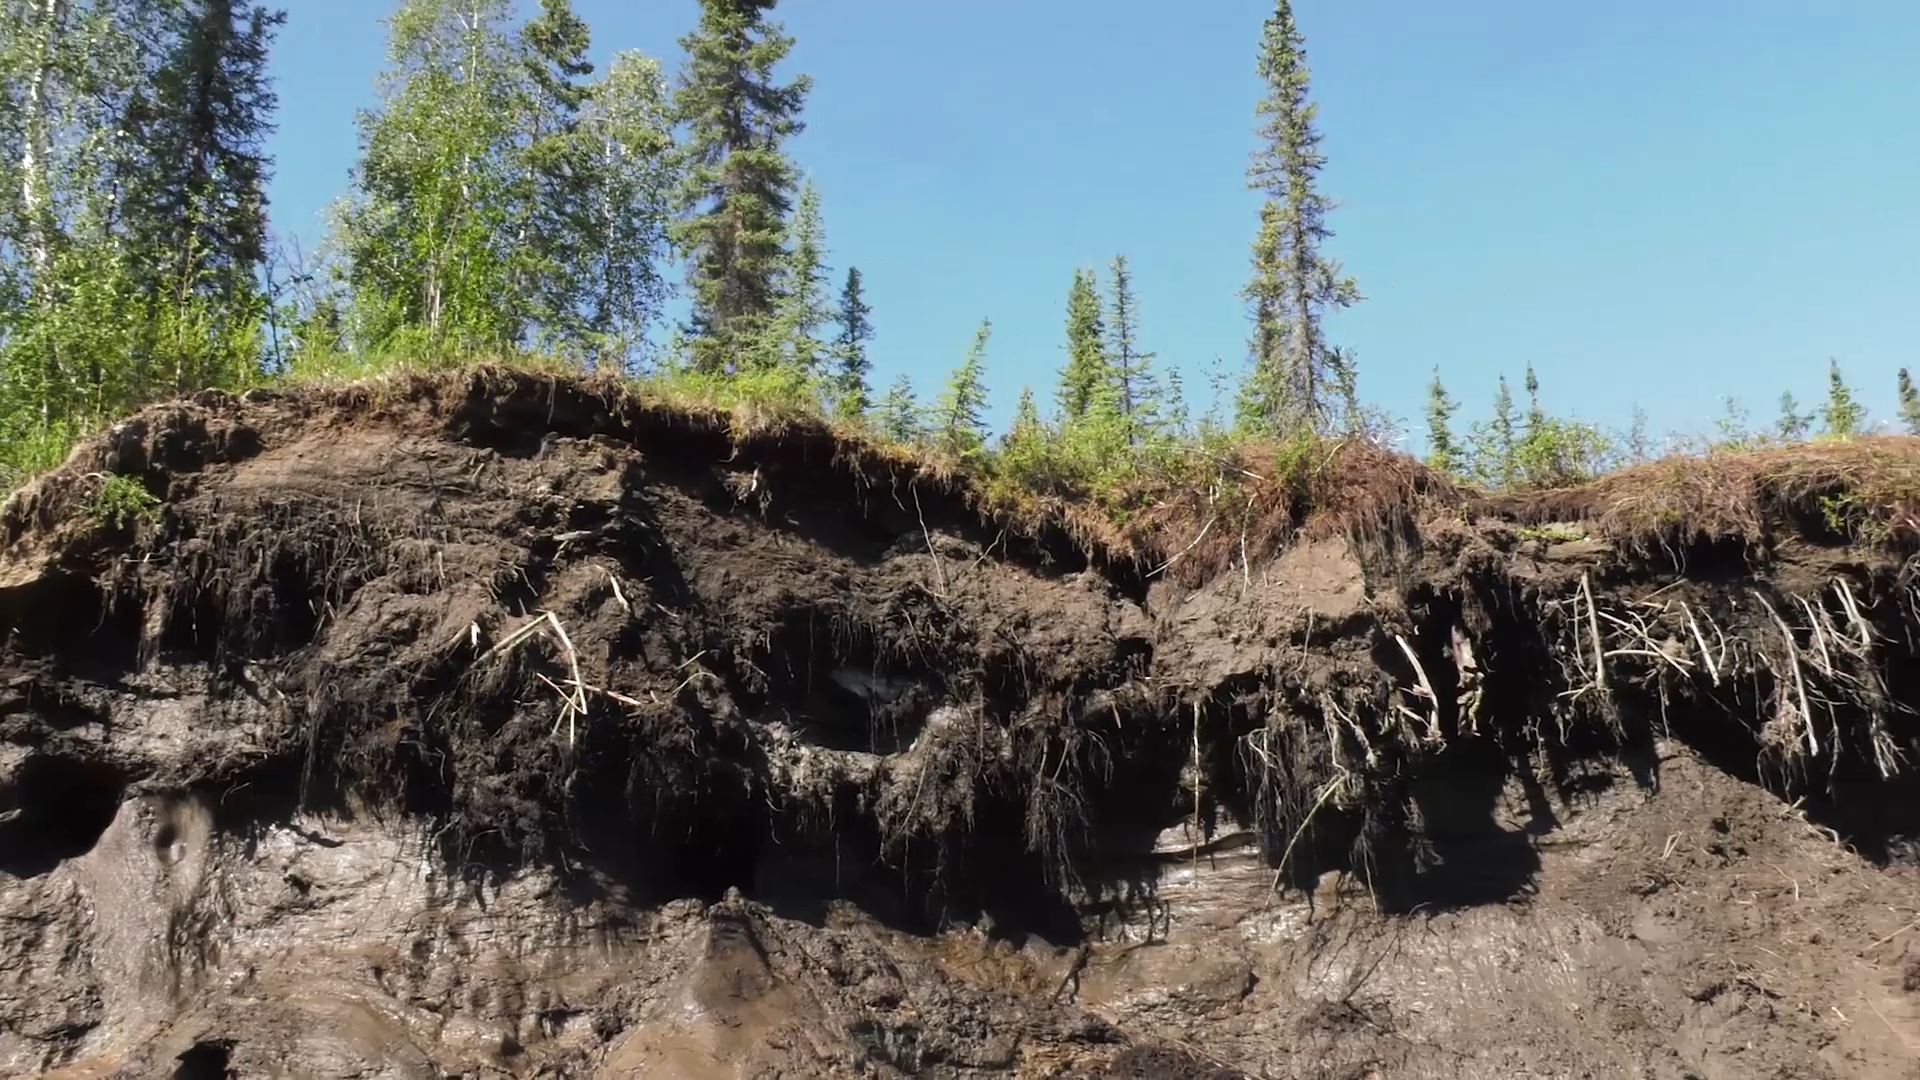 Image: Arctic Shifts to a Carbon Source due to Winter Soil Emissions